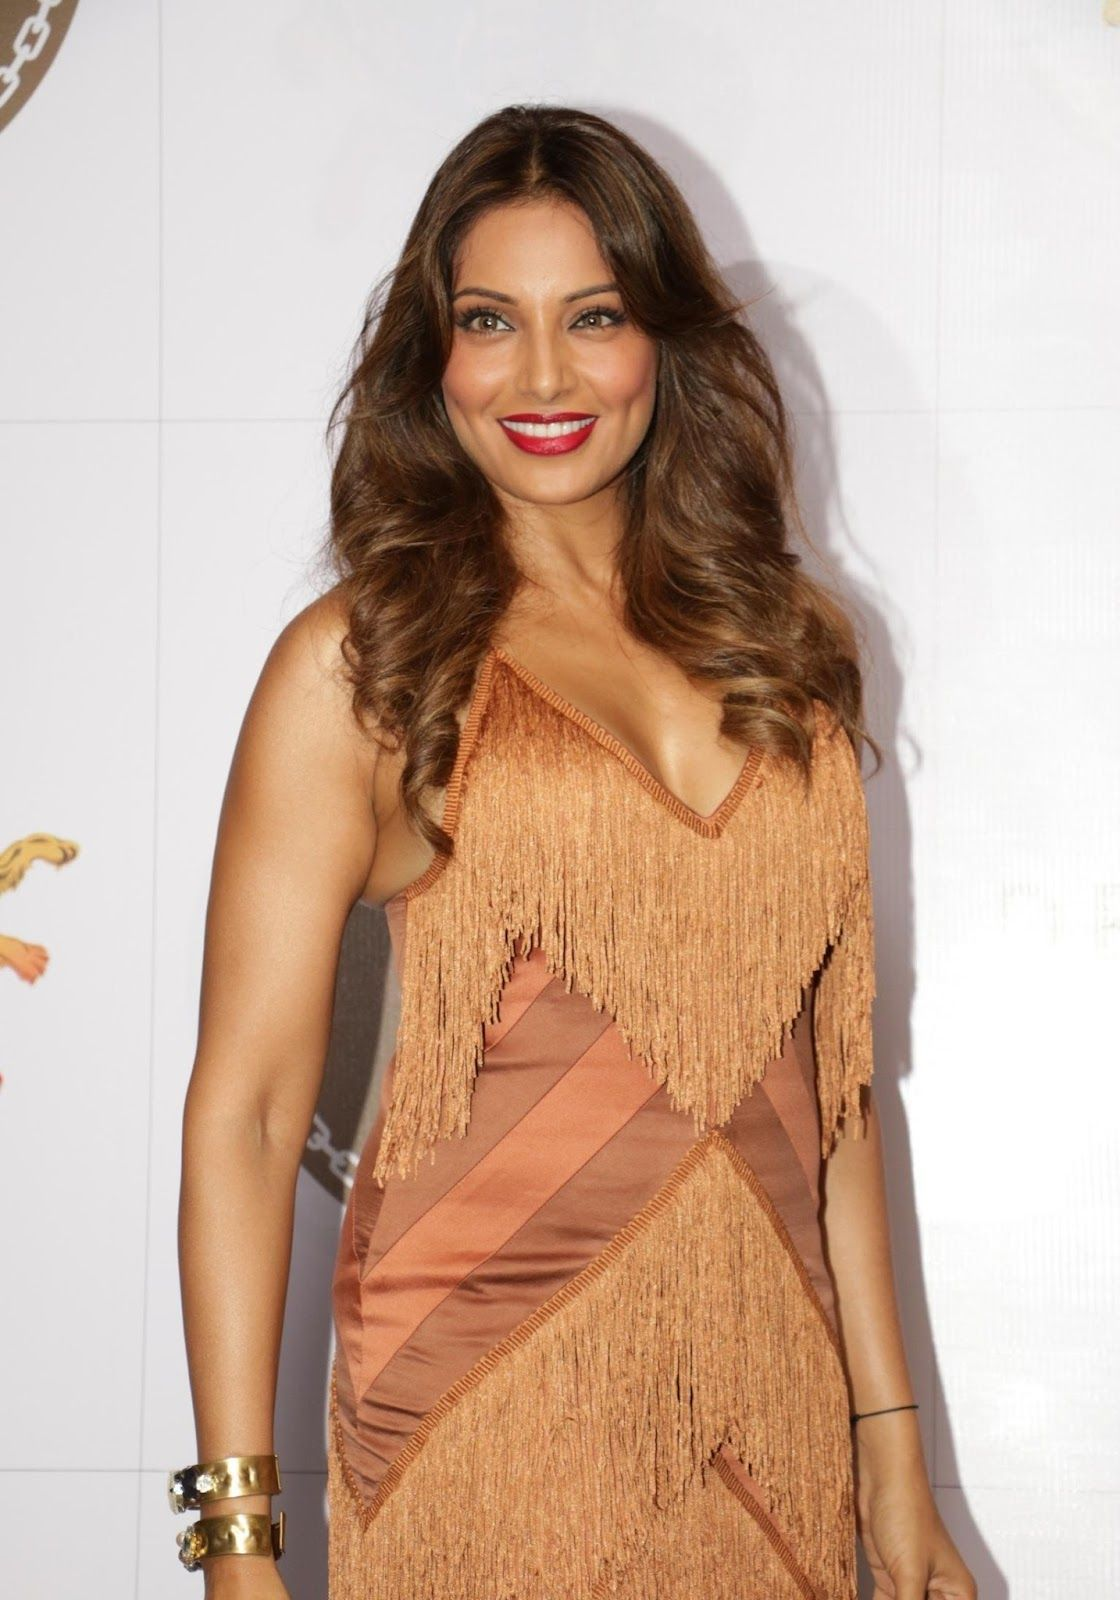 bipasha basu new spicy stills, model and actress bipasha basu in a